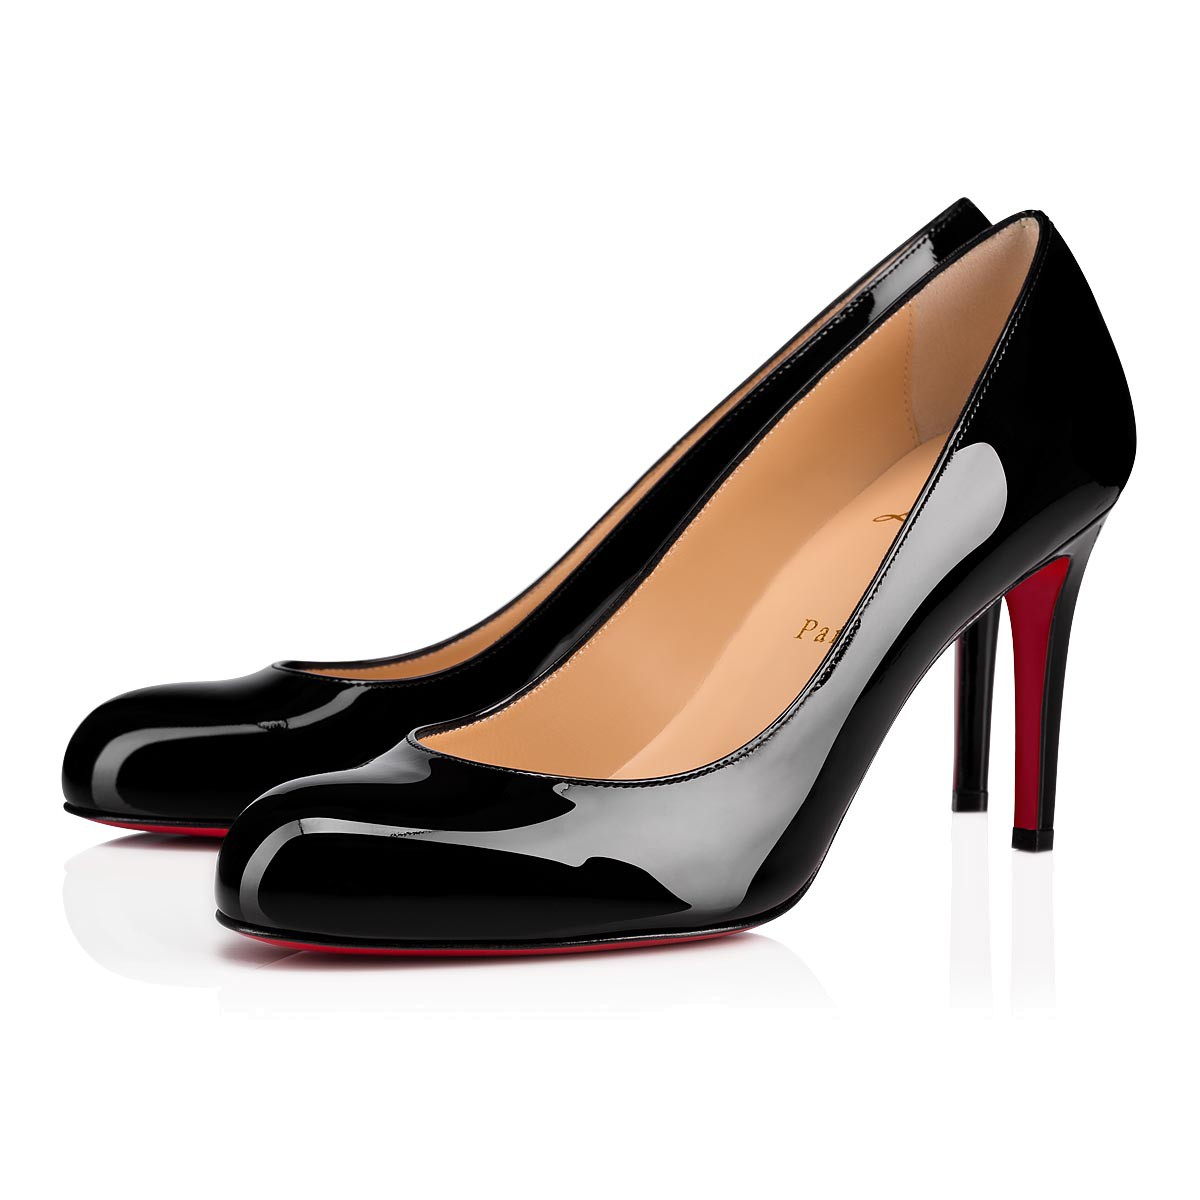 df45ad772fad Simple Pump 85 Black Patent Leather - Women Shoes - Christian Louboutin